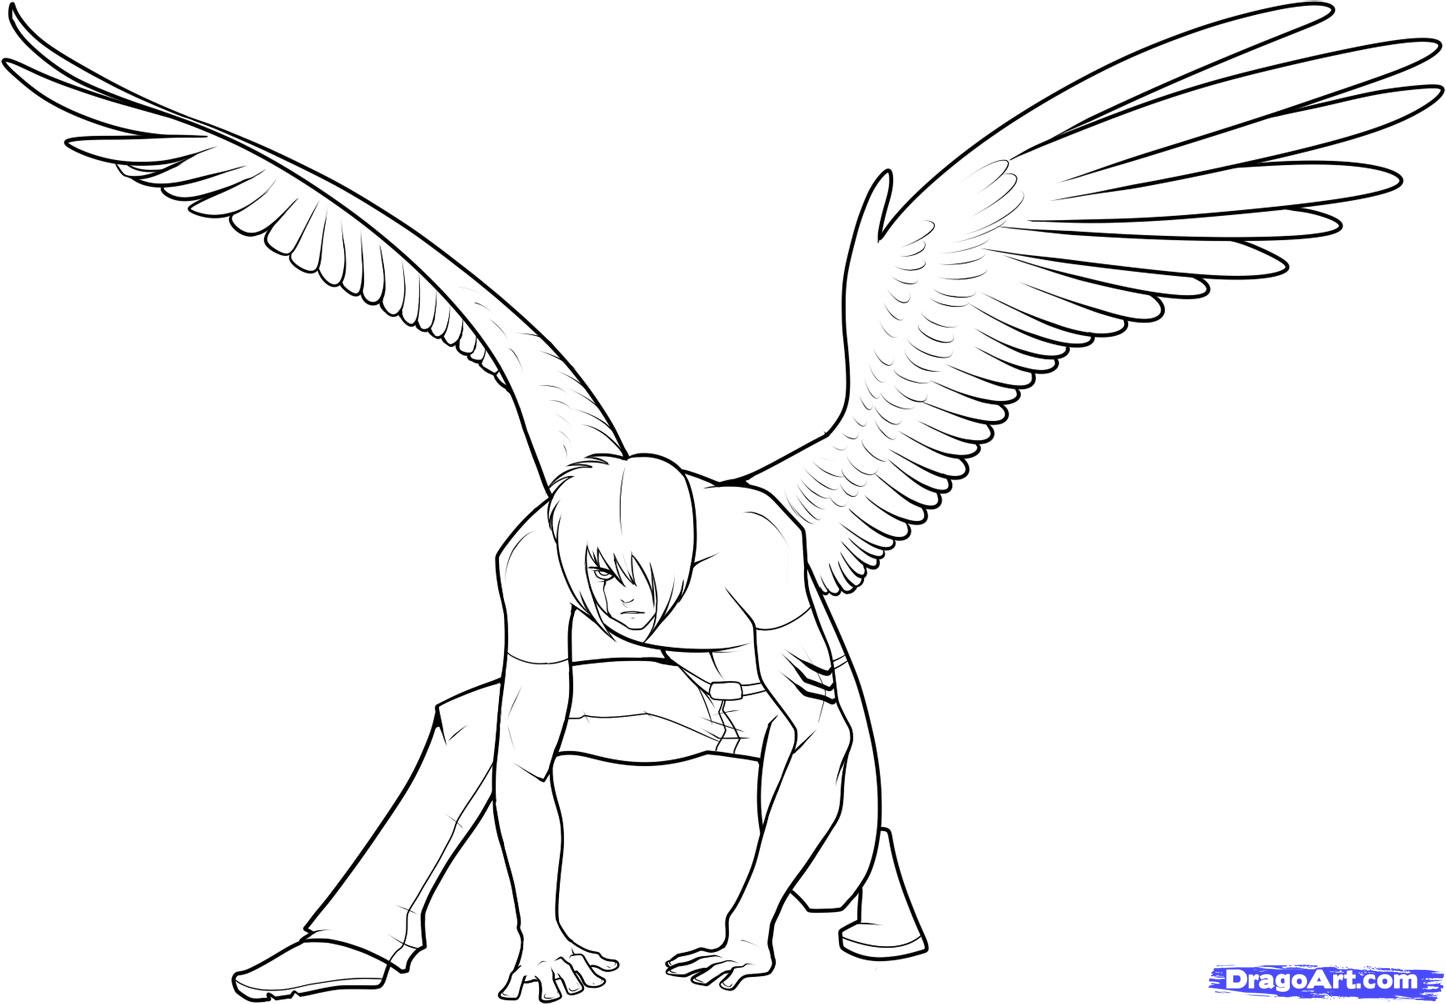 How to draw anime wings draw an anime angel step 17 1 000000049353 5 jpg